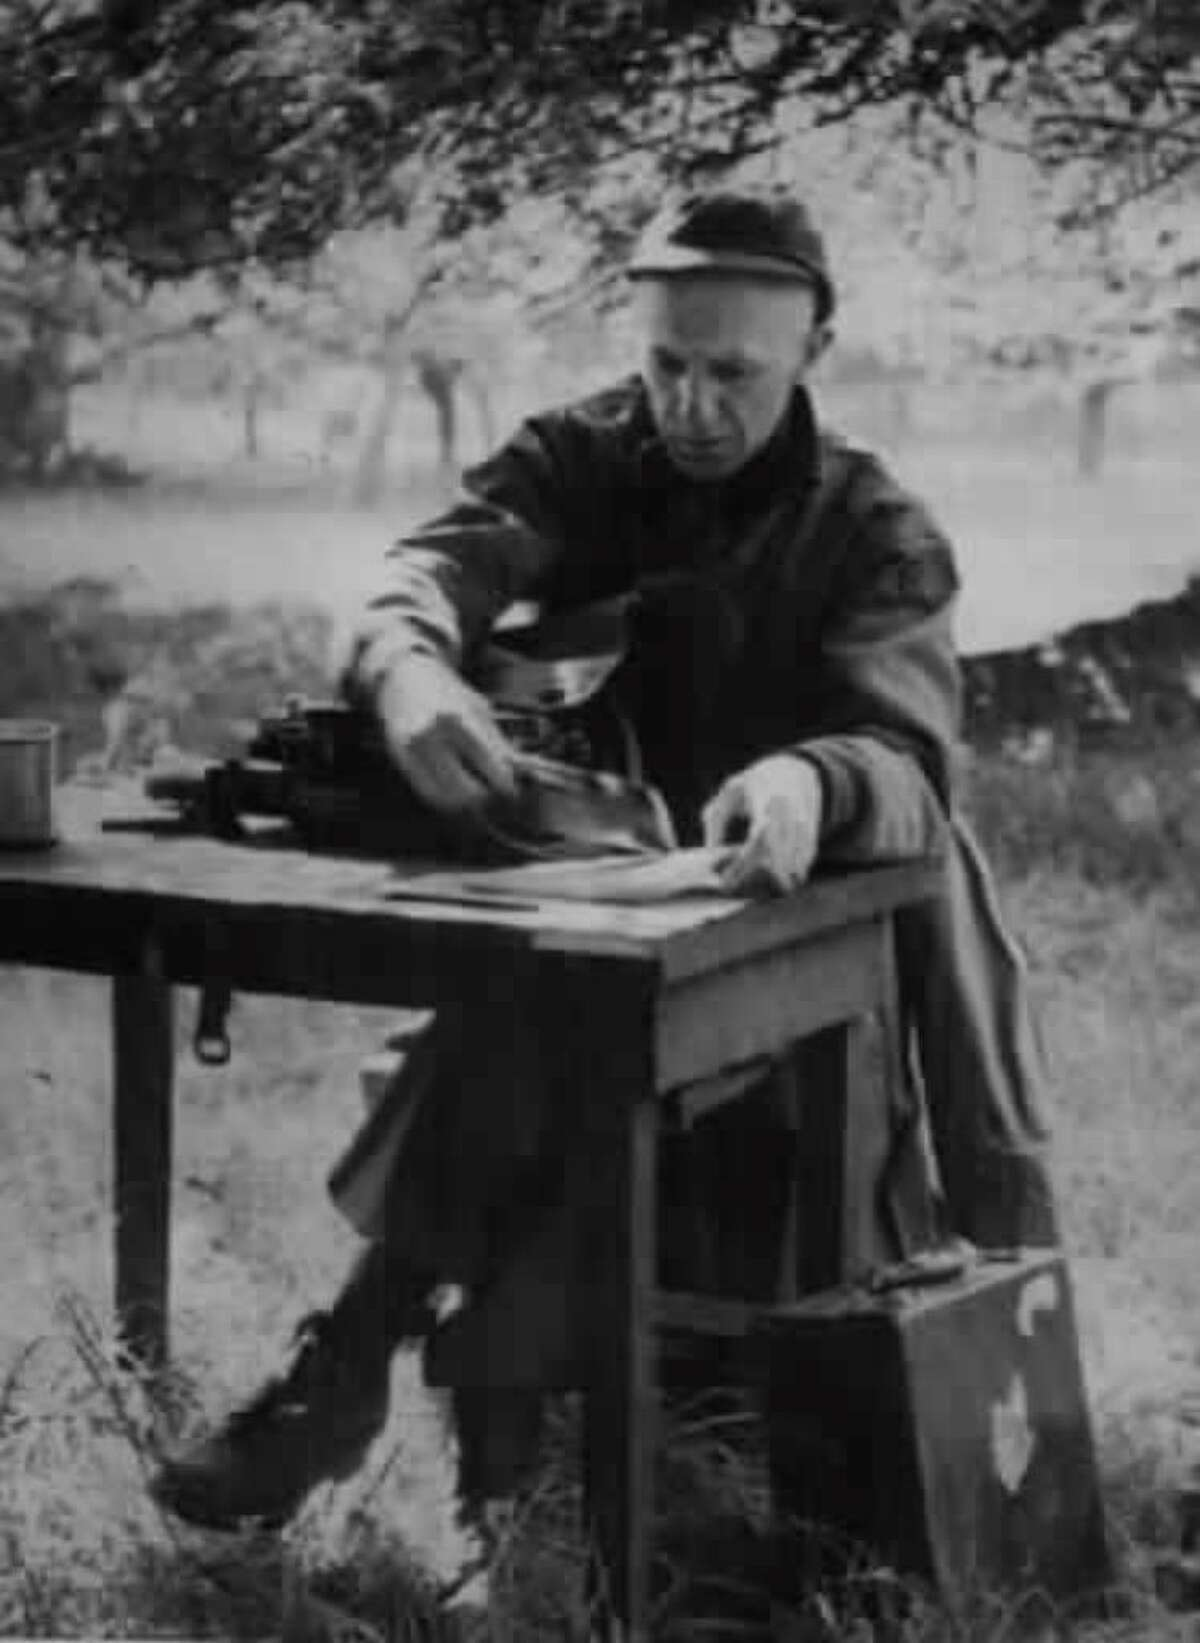 War correspondent Ernie Pyle sets up his typewriter in a field in Normandy, France in July 1944. (Associated Press archive)